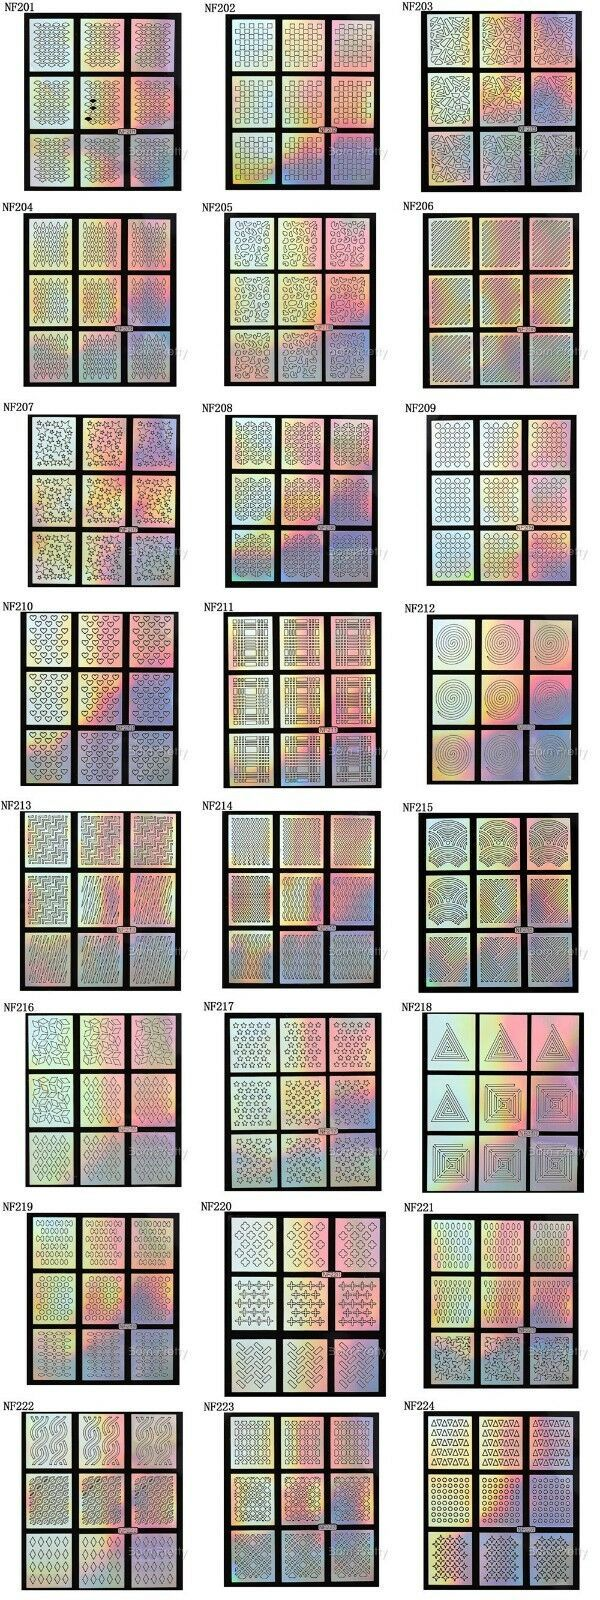 24 Sheets Laser Nail Art Guide Tips Hollow Stencil Sticker Template Vinyls Decor image 3